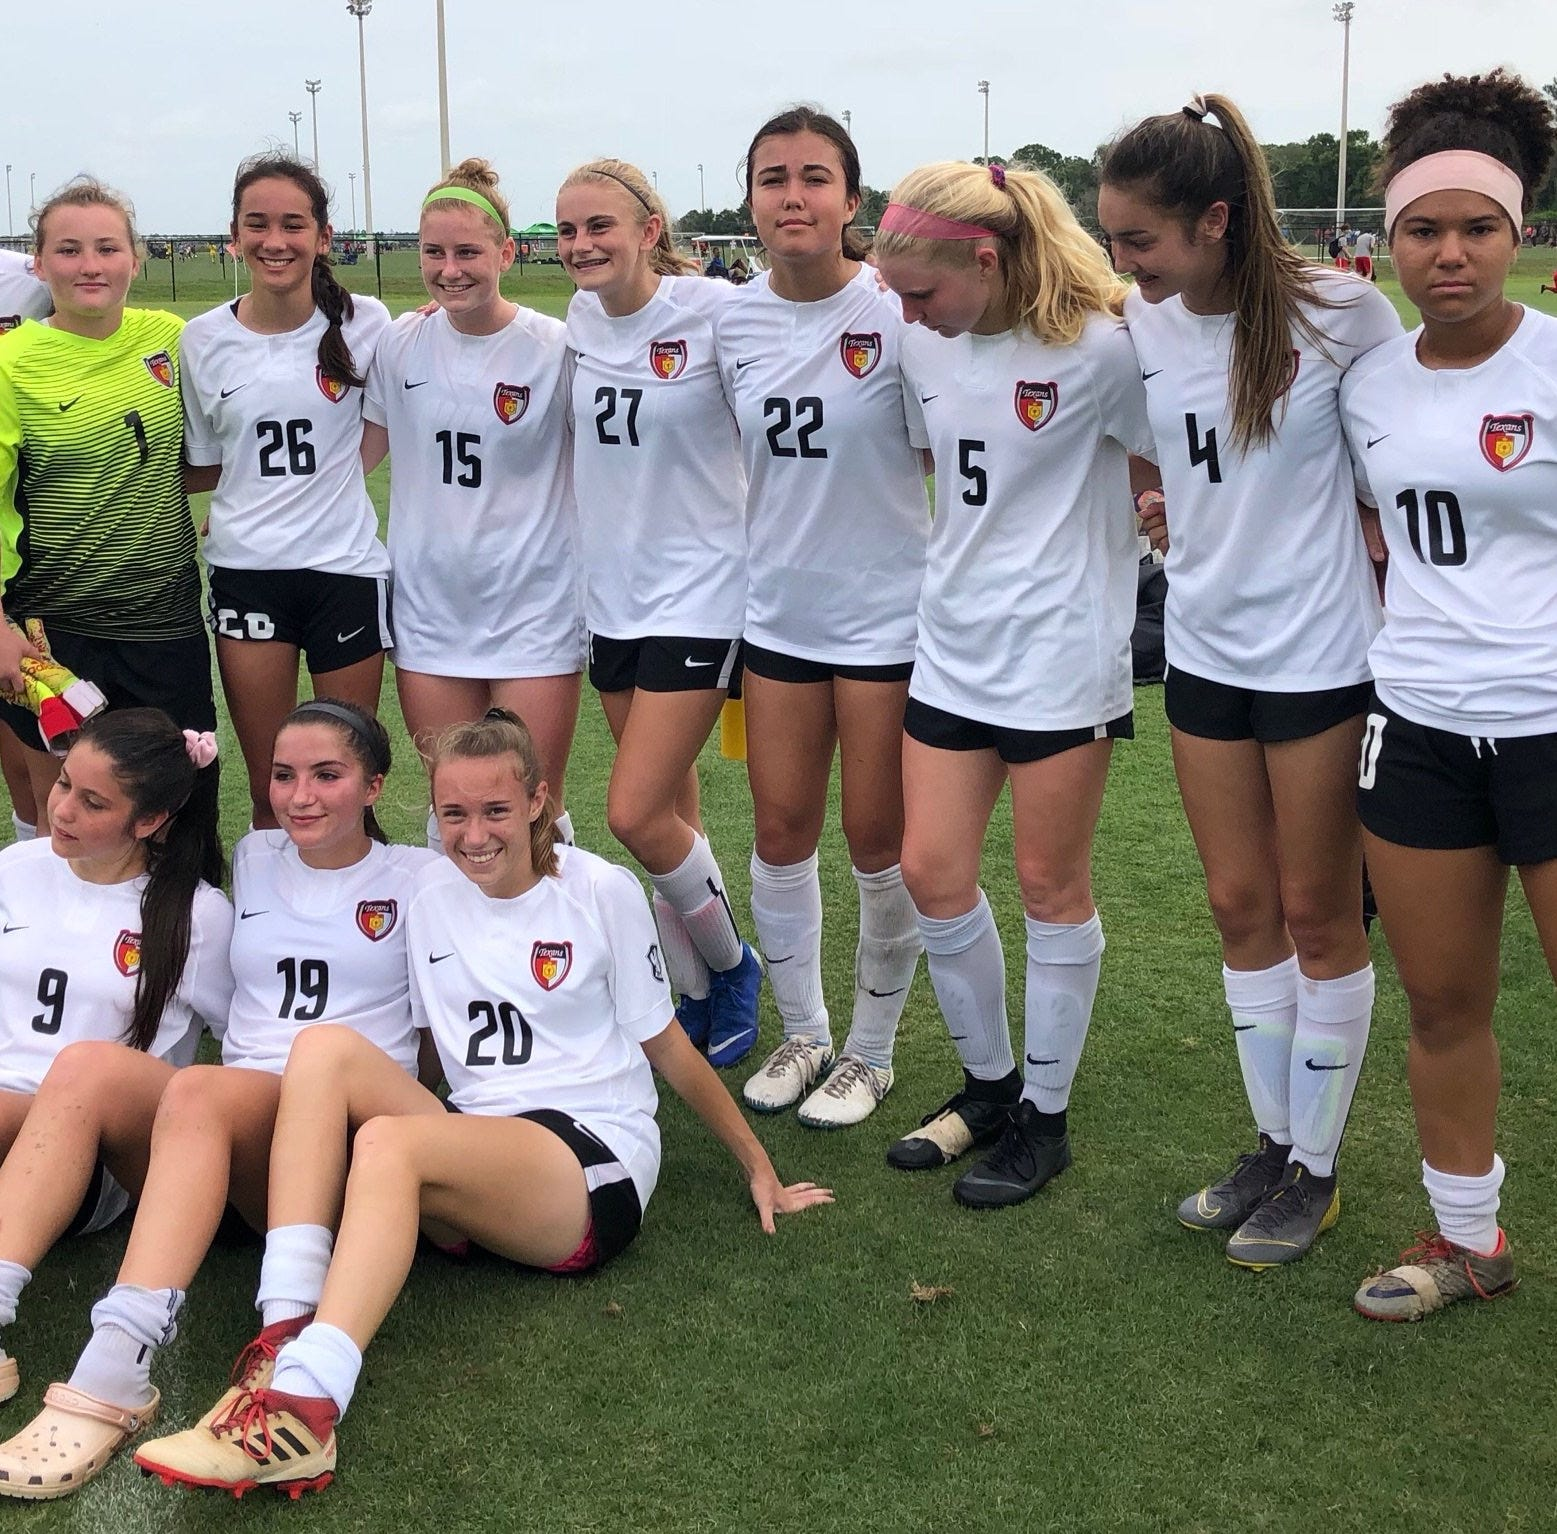 Three Gulf Coast Texans teams vying for titles in FYSA State Cup semis